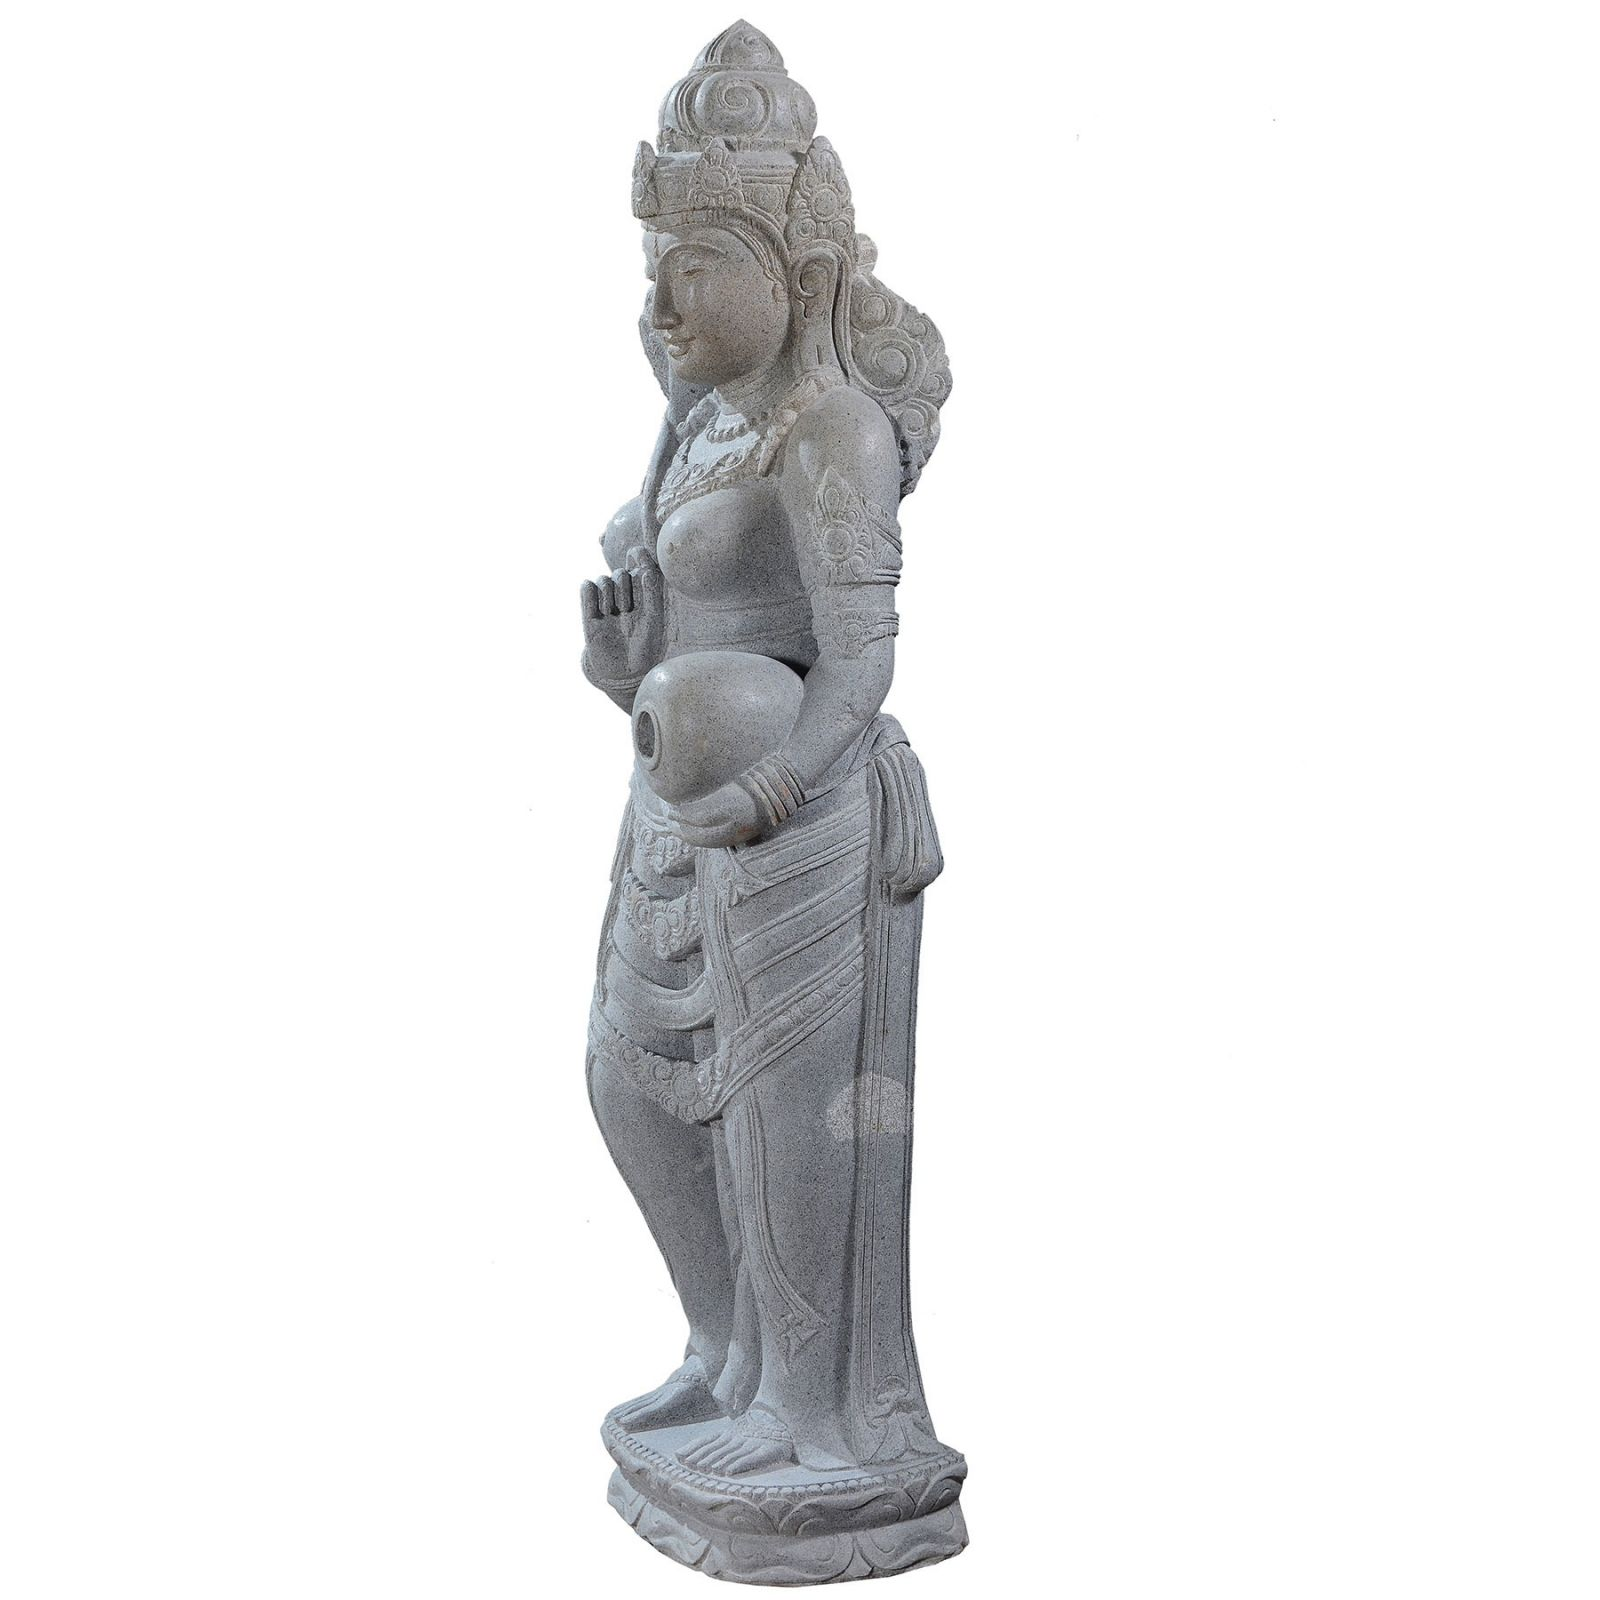 Large garden Stone statue of standing Dewi Sri - Goddess of the earth